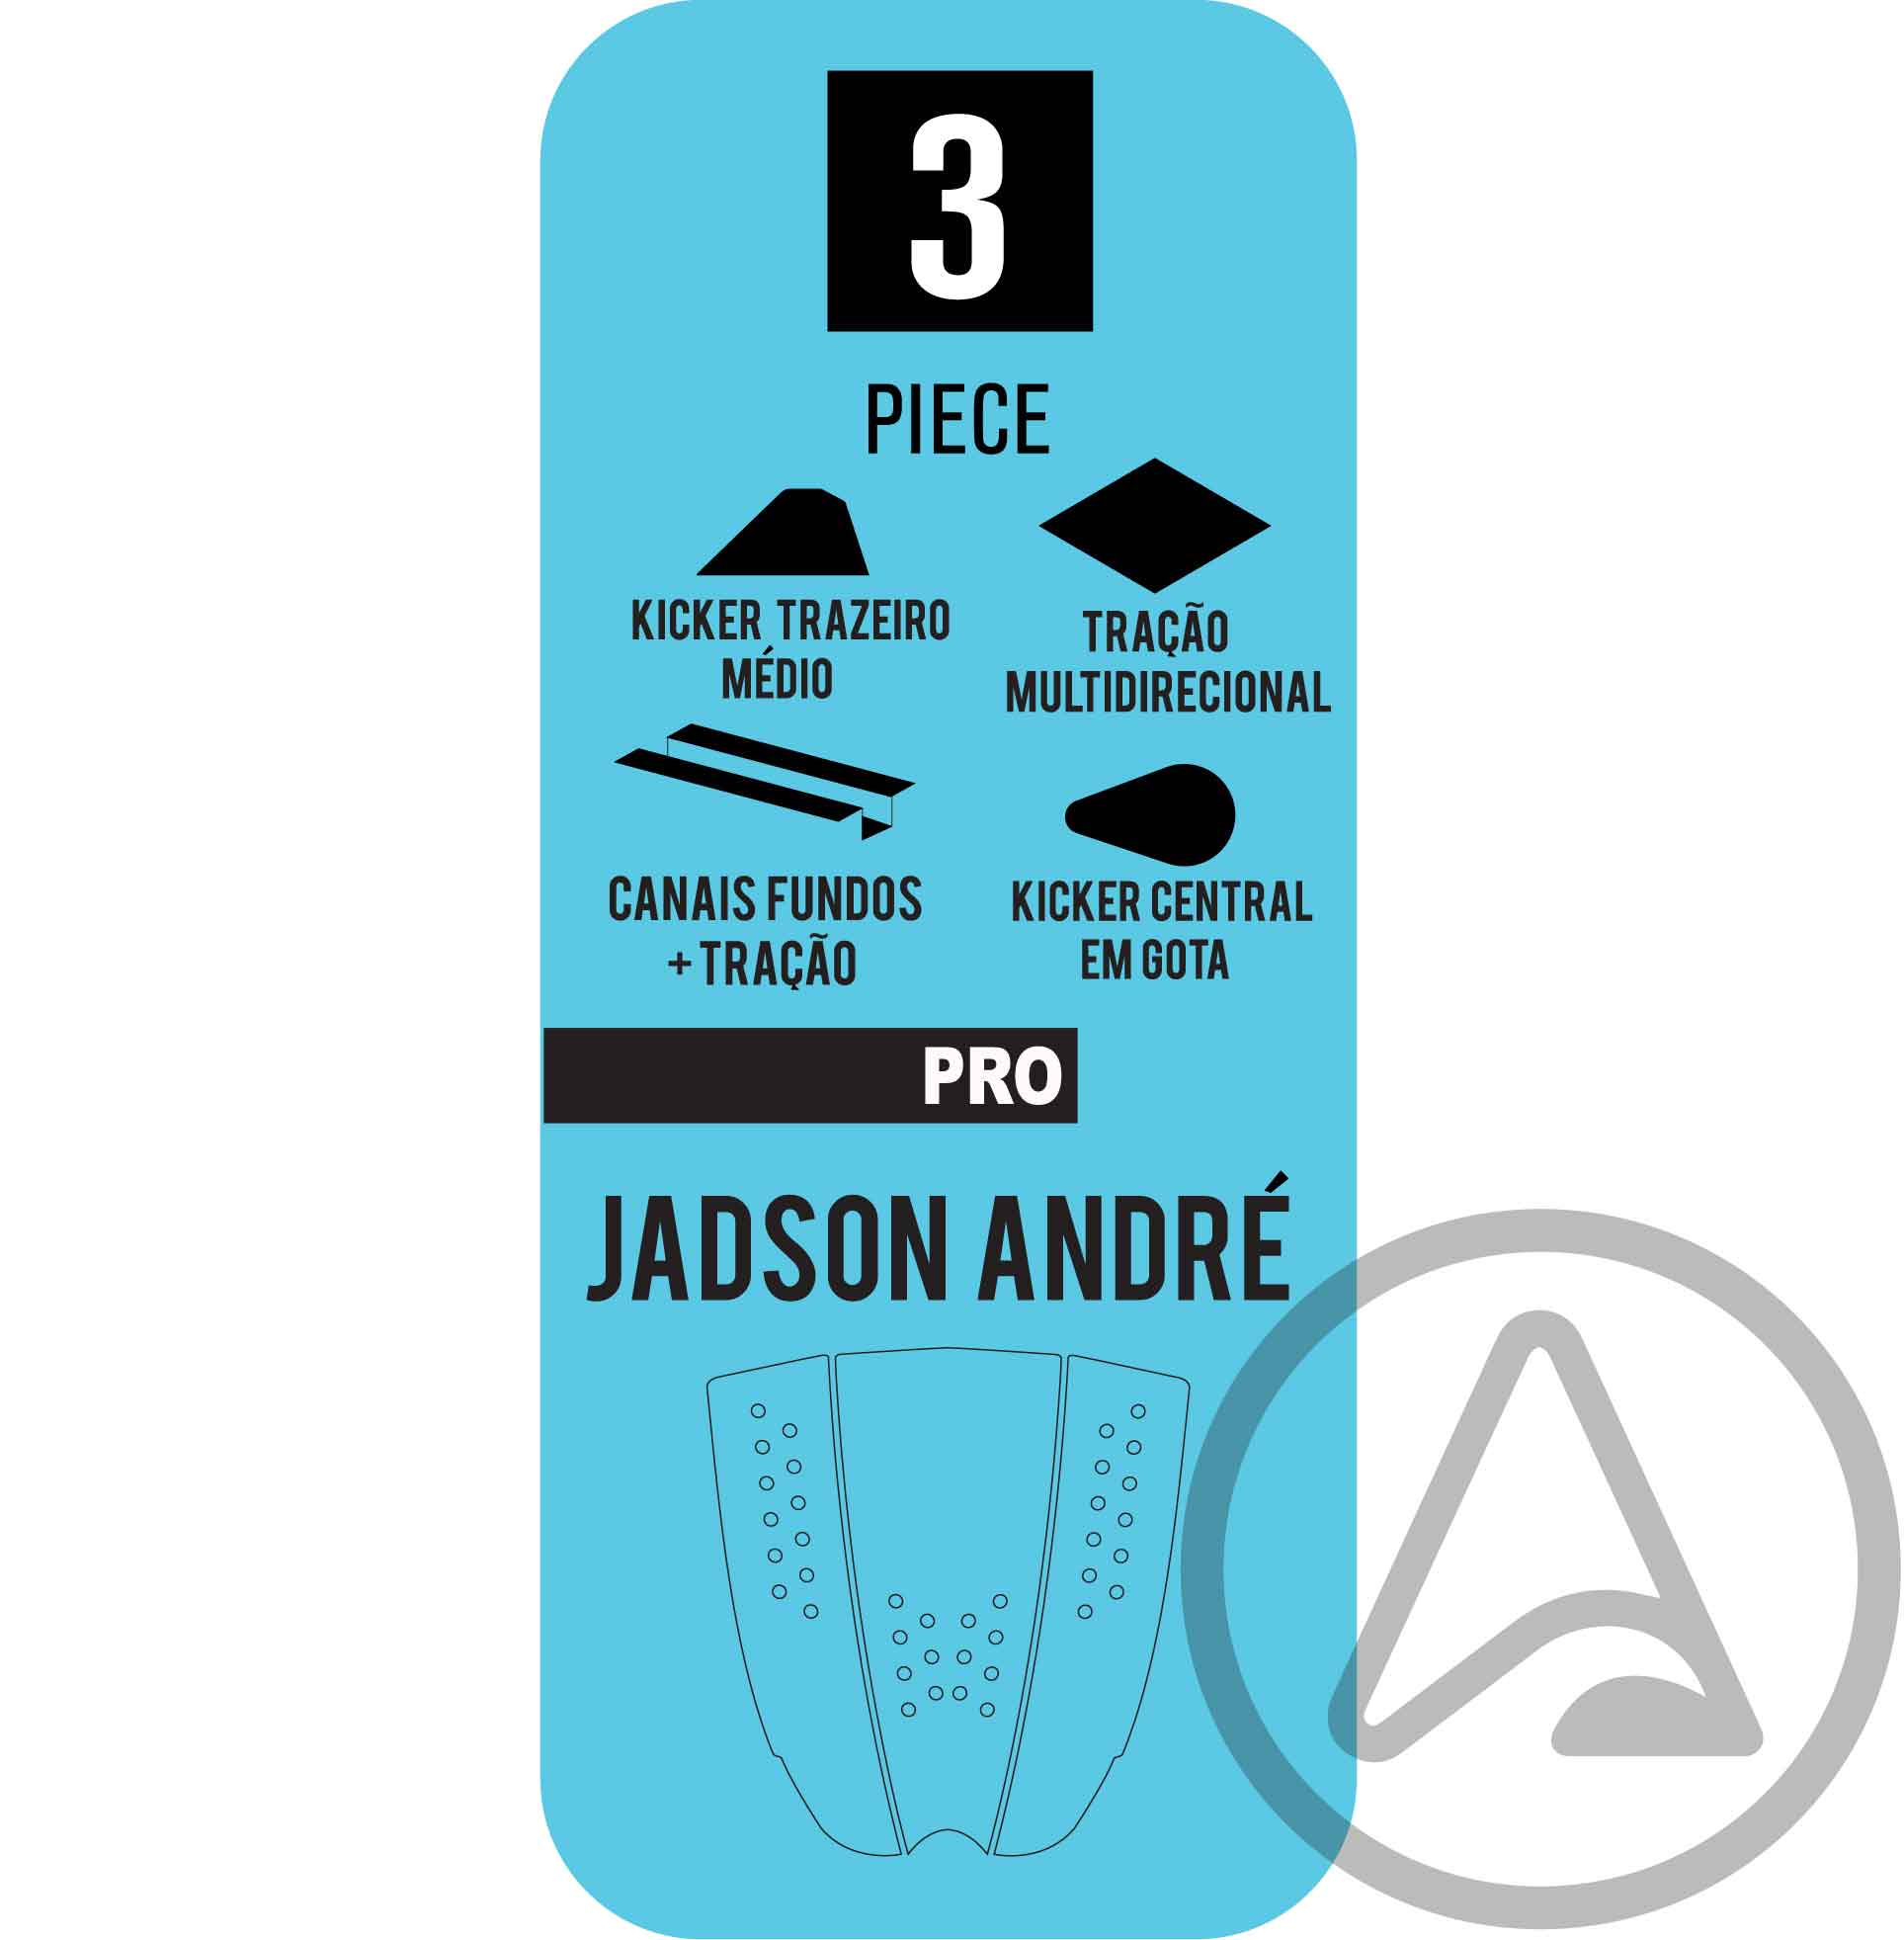 Deck Bully's Pro Jadson Andre